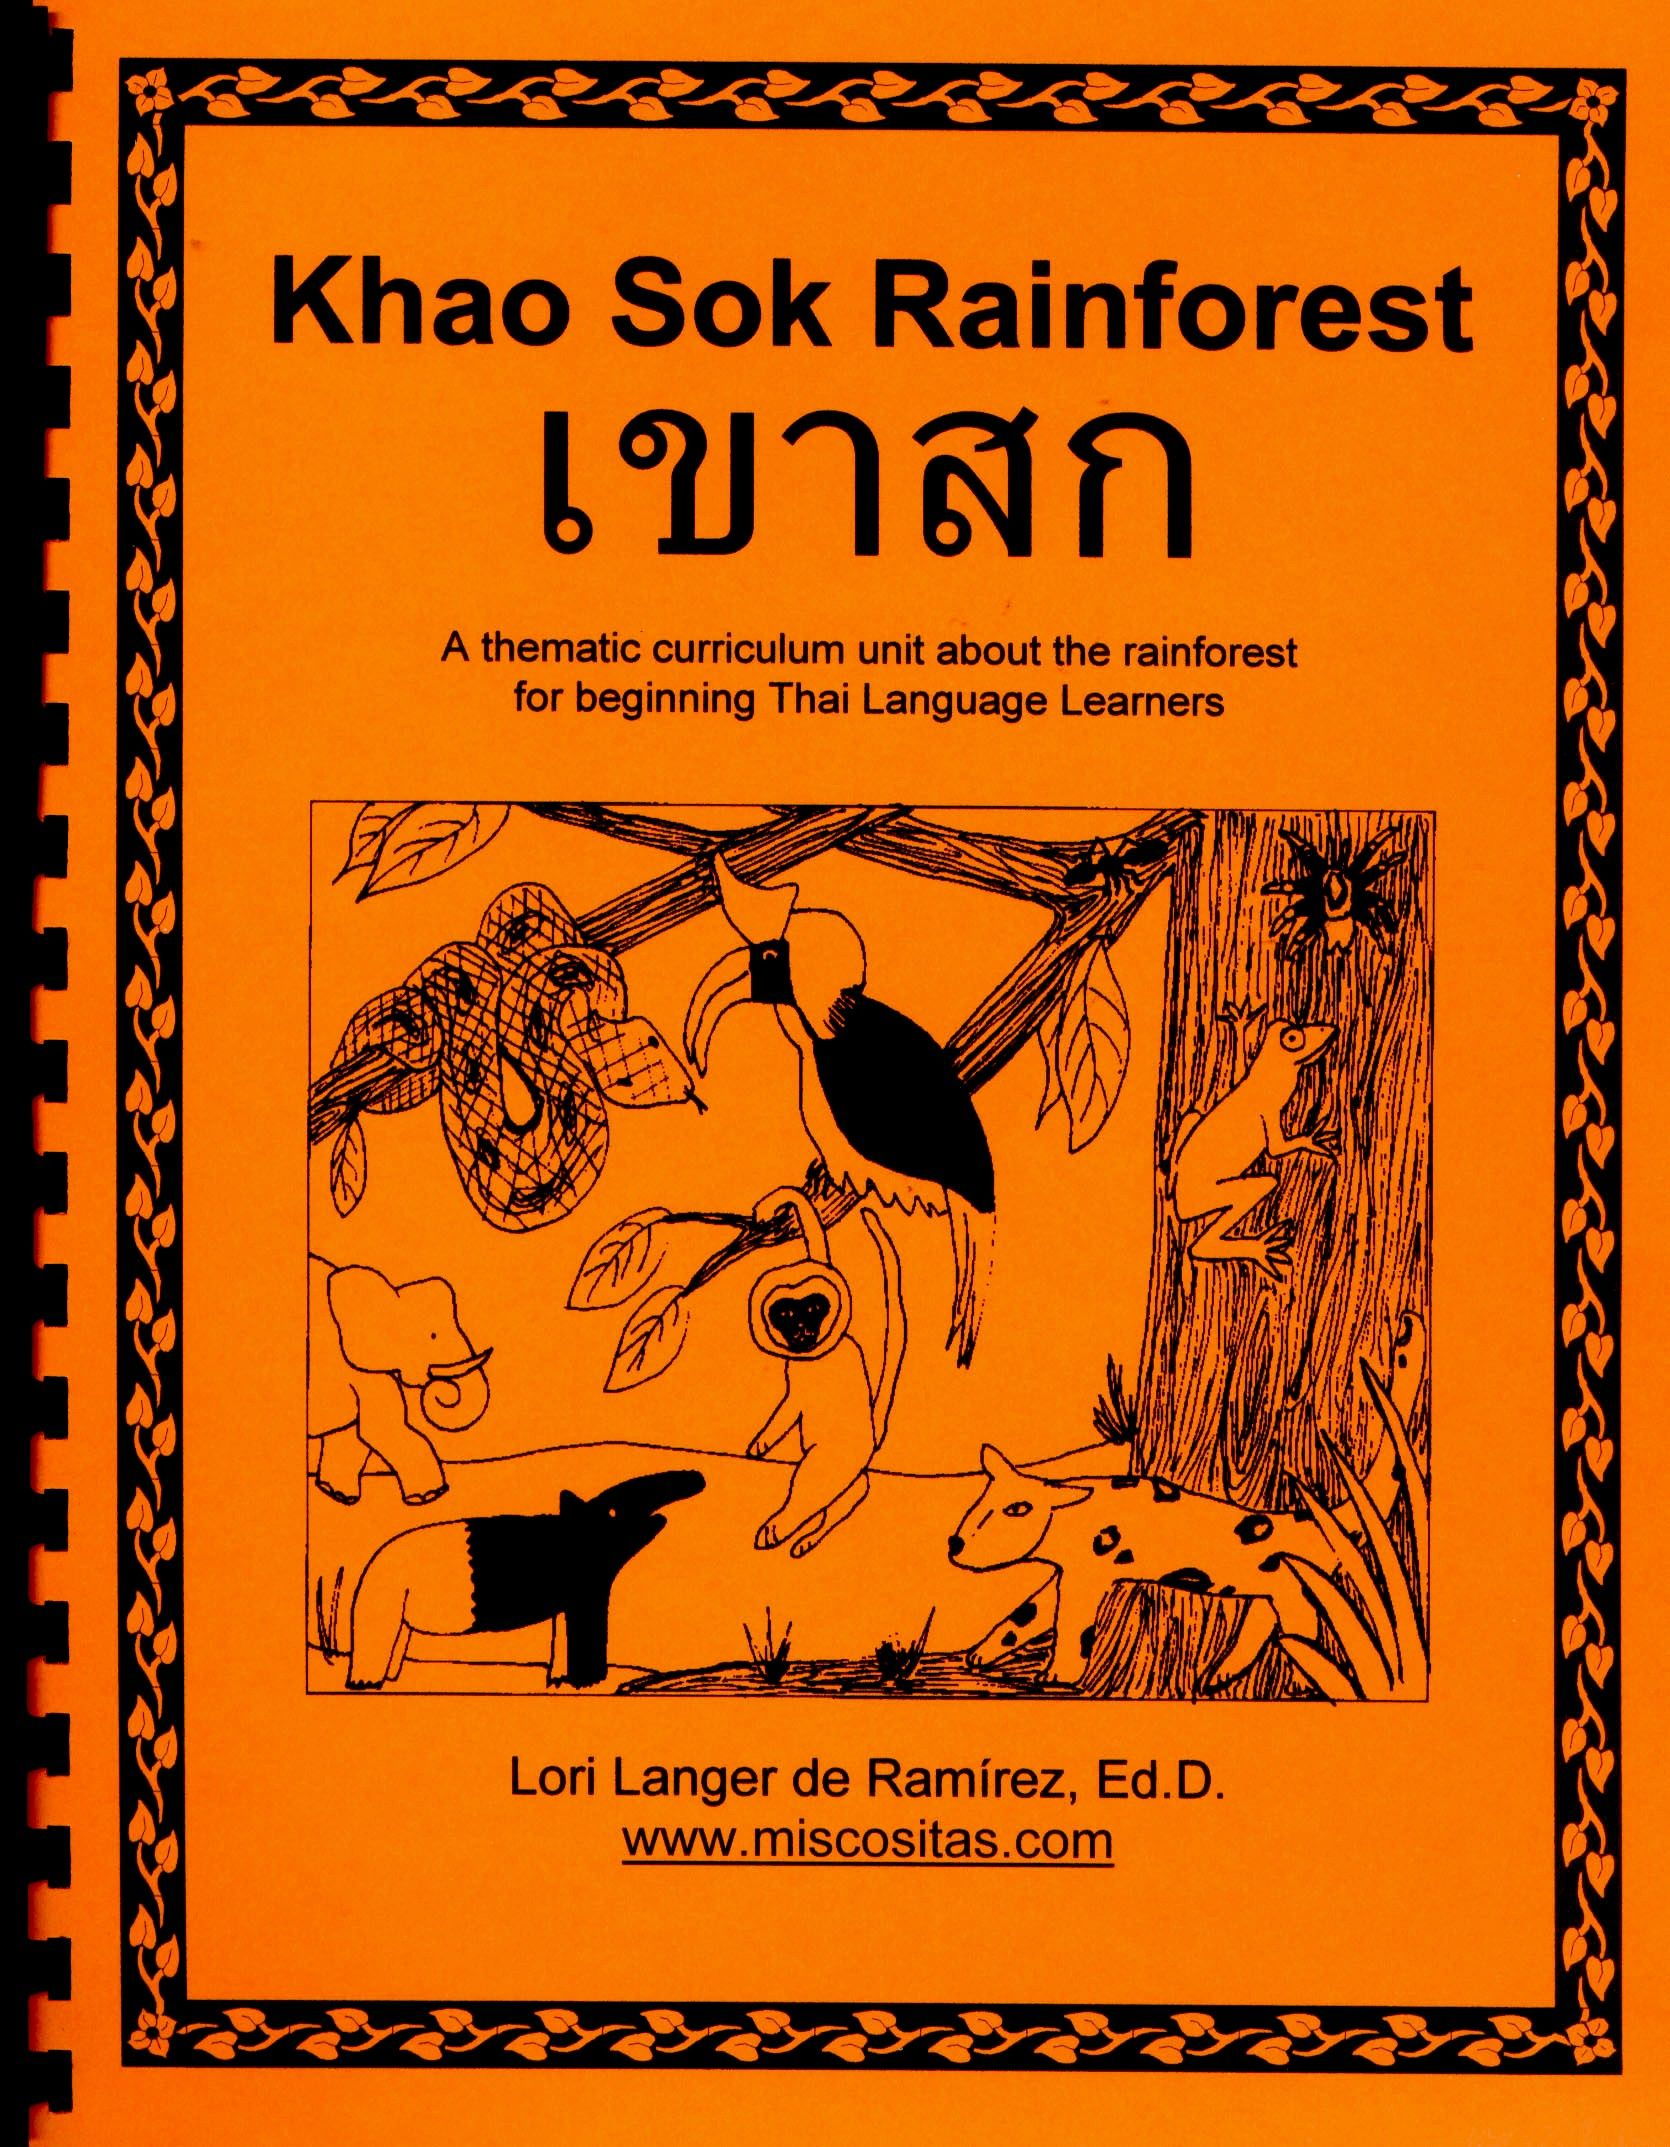 The Khao Sok Rainforest A Thematic Curriculum Unit About